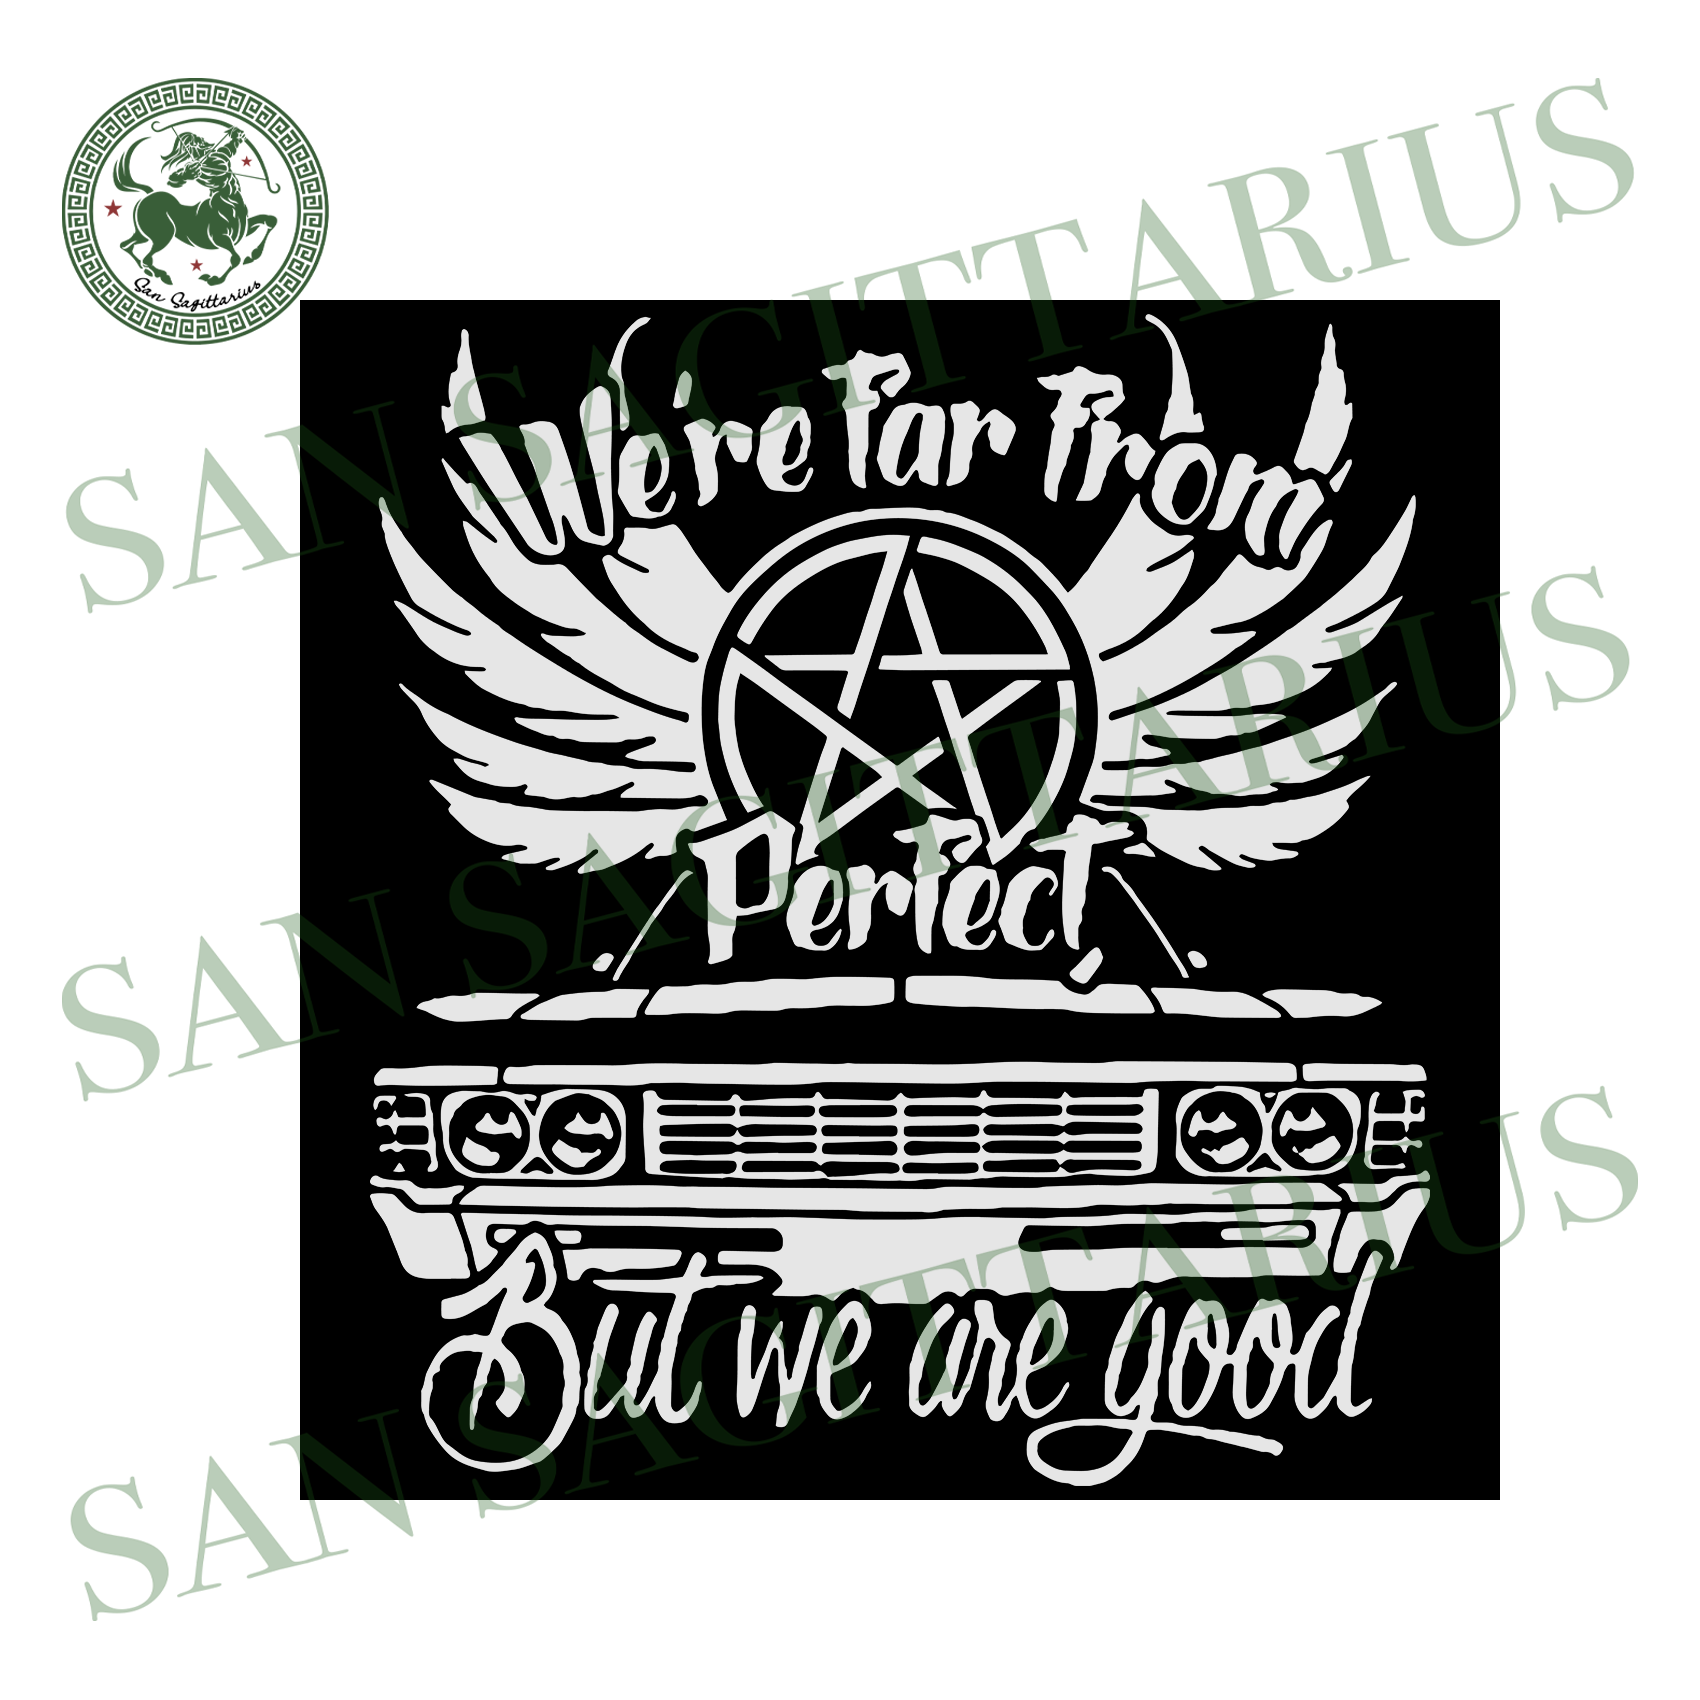 We were far from perfect svg,svg,supernatural shirt svg,supernatural quotes svg,supernatural fandom svg,svg cricut, silhouette svg files, cricut svg, silhouette svg, svg designs, vinyl svg